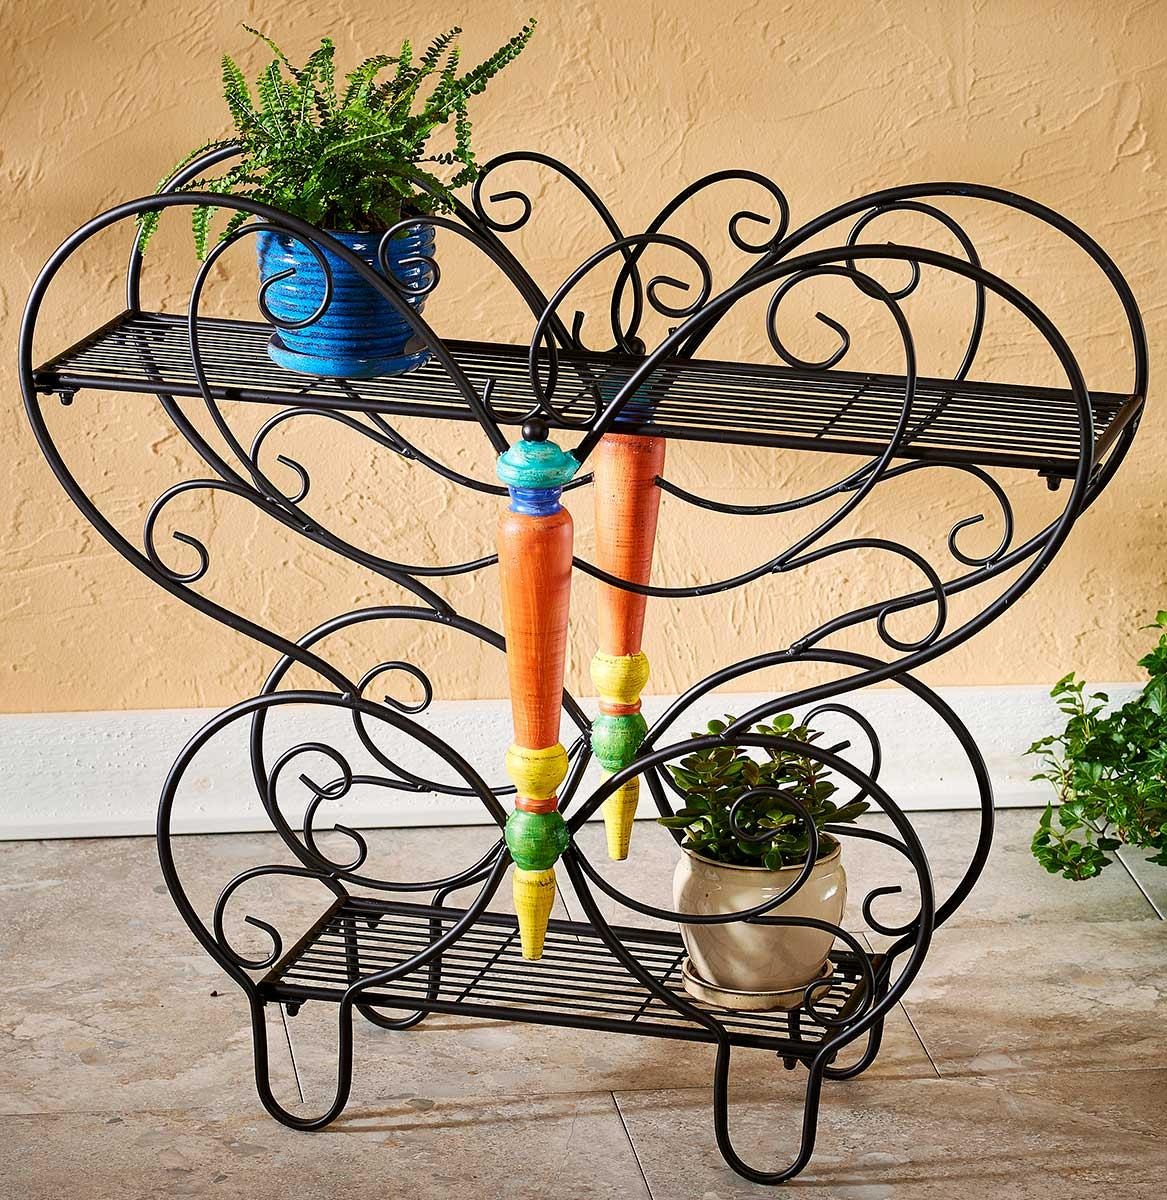 5288068502: Flight of the Butterfly Side Table